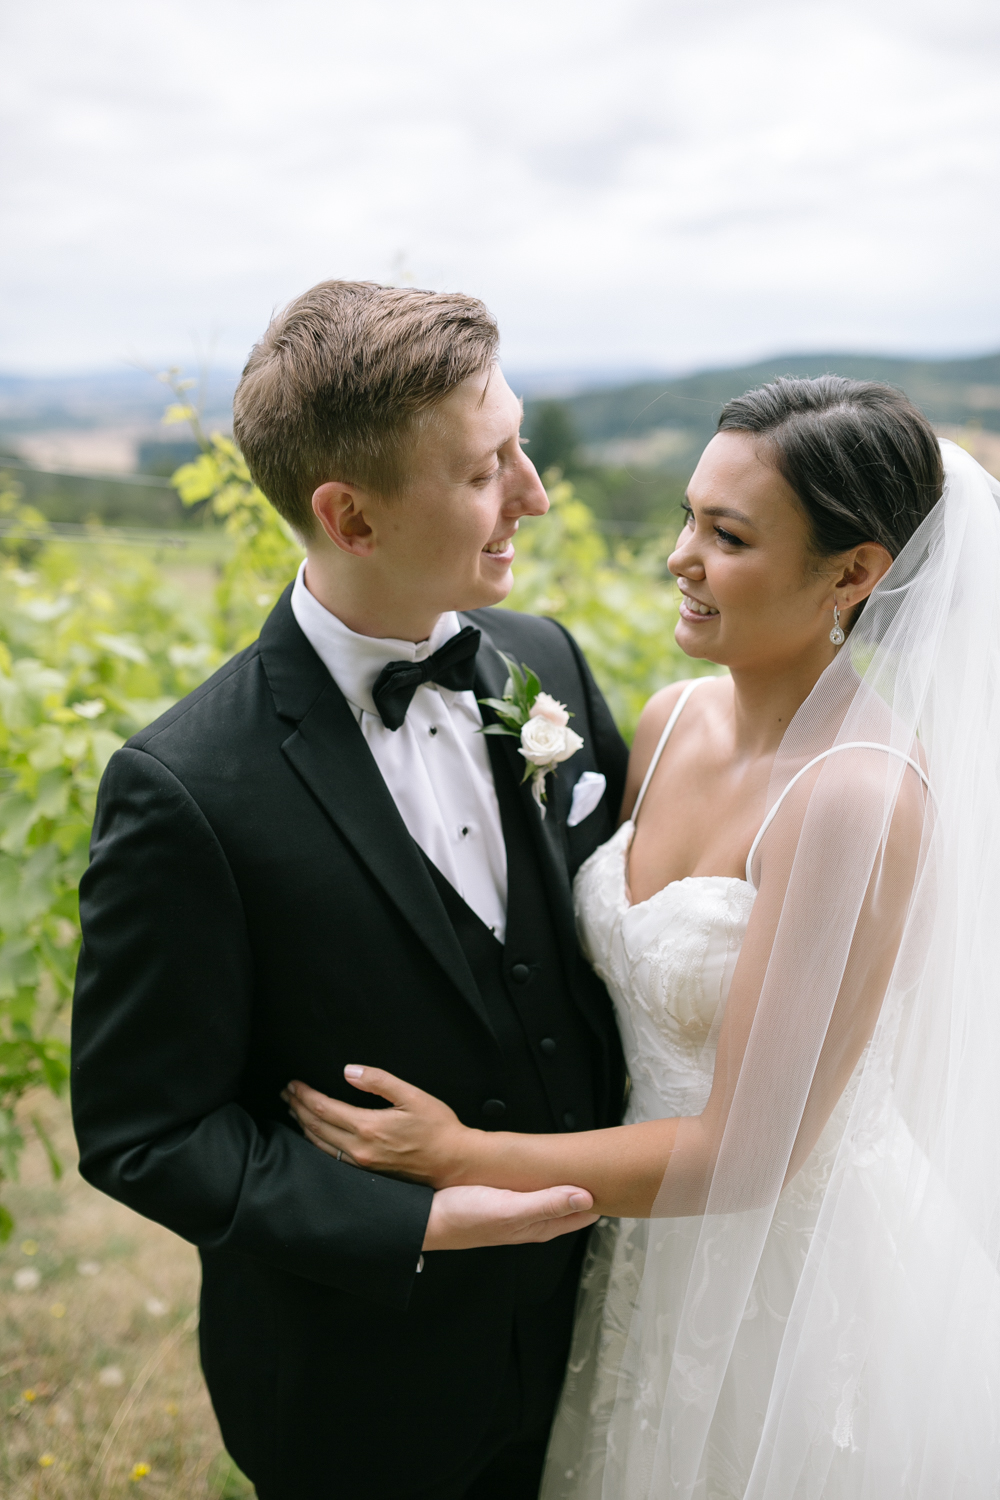 Youngberg Hill Vineyard Wedding in Wine Country Oregon - Corrie Mick Photography-61.jpg